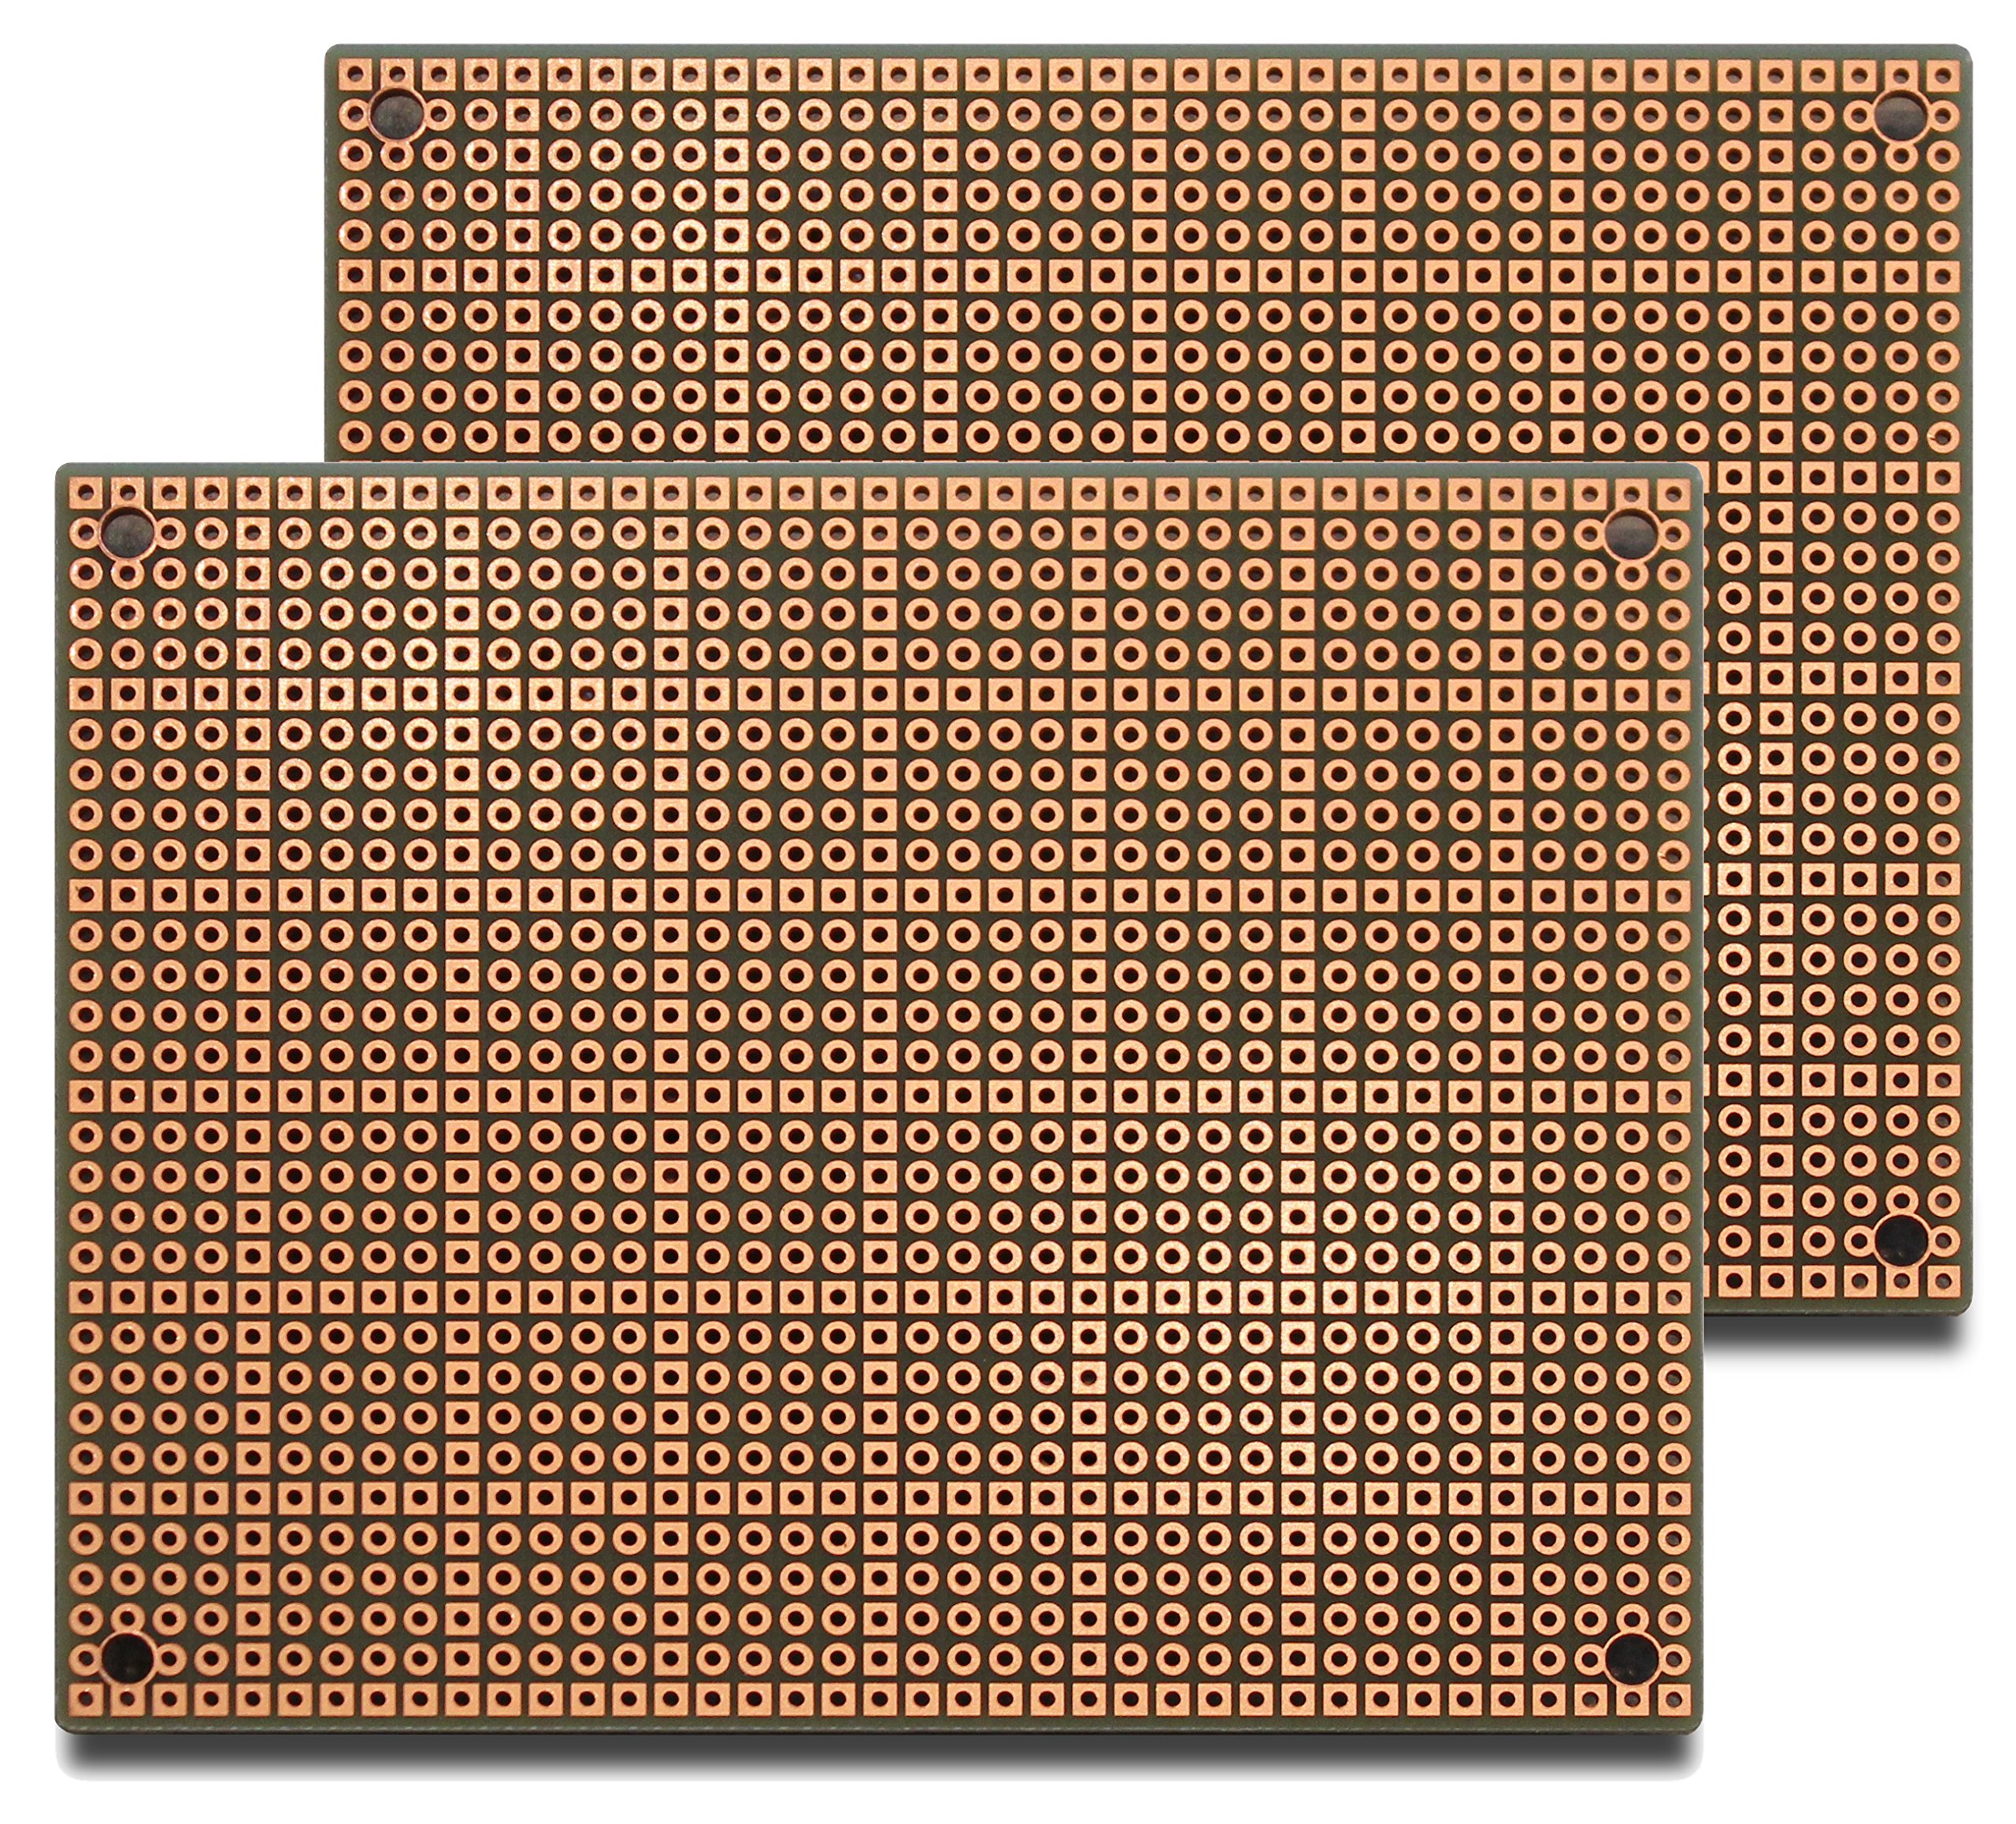 PAD2 (Two-Pack) PadBoard-2, Pad per Hole, 2 Sided PCB, Plated Holes, Size 2 = 100 x 80mm (3.94 x 3.15in)